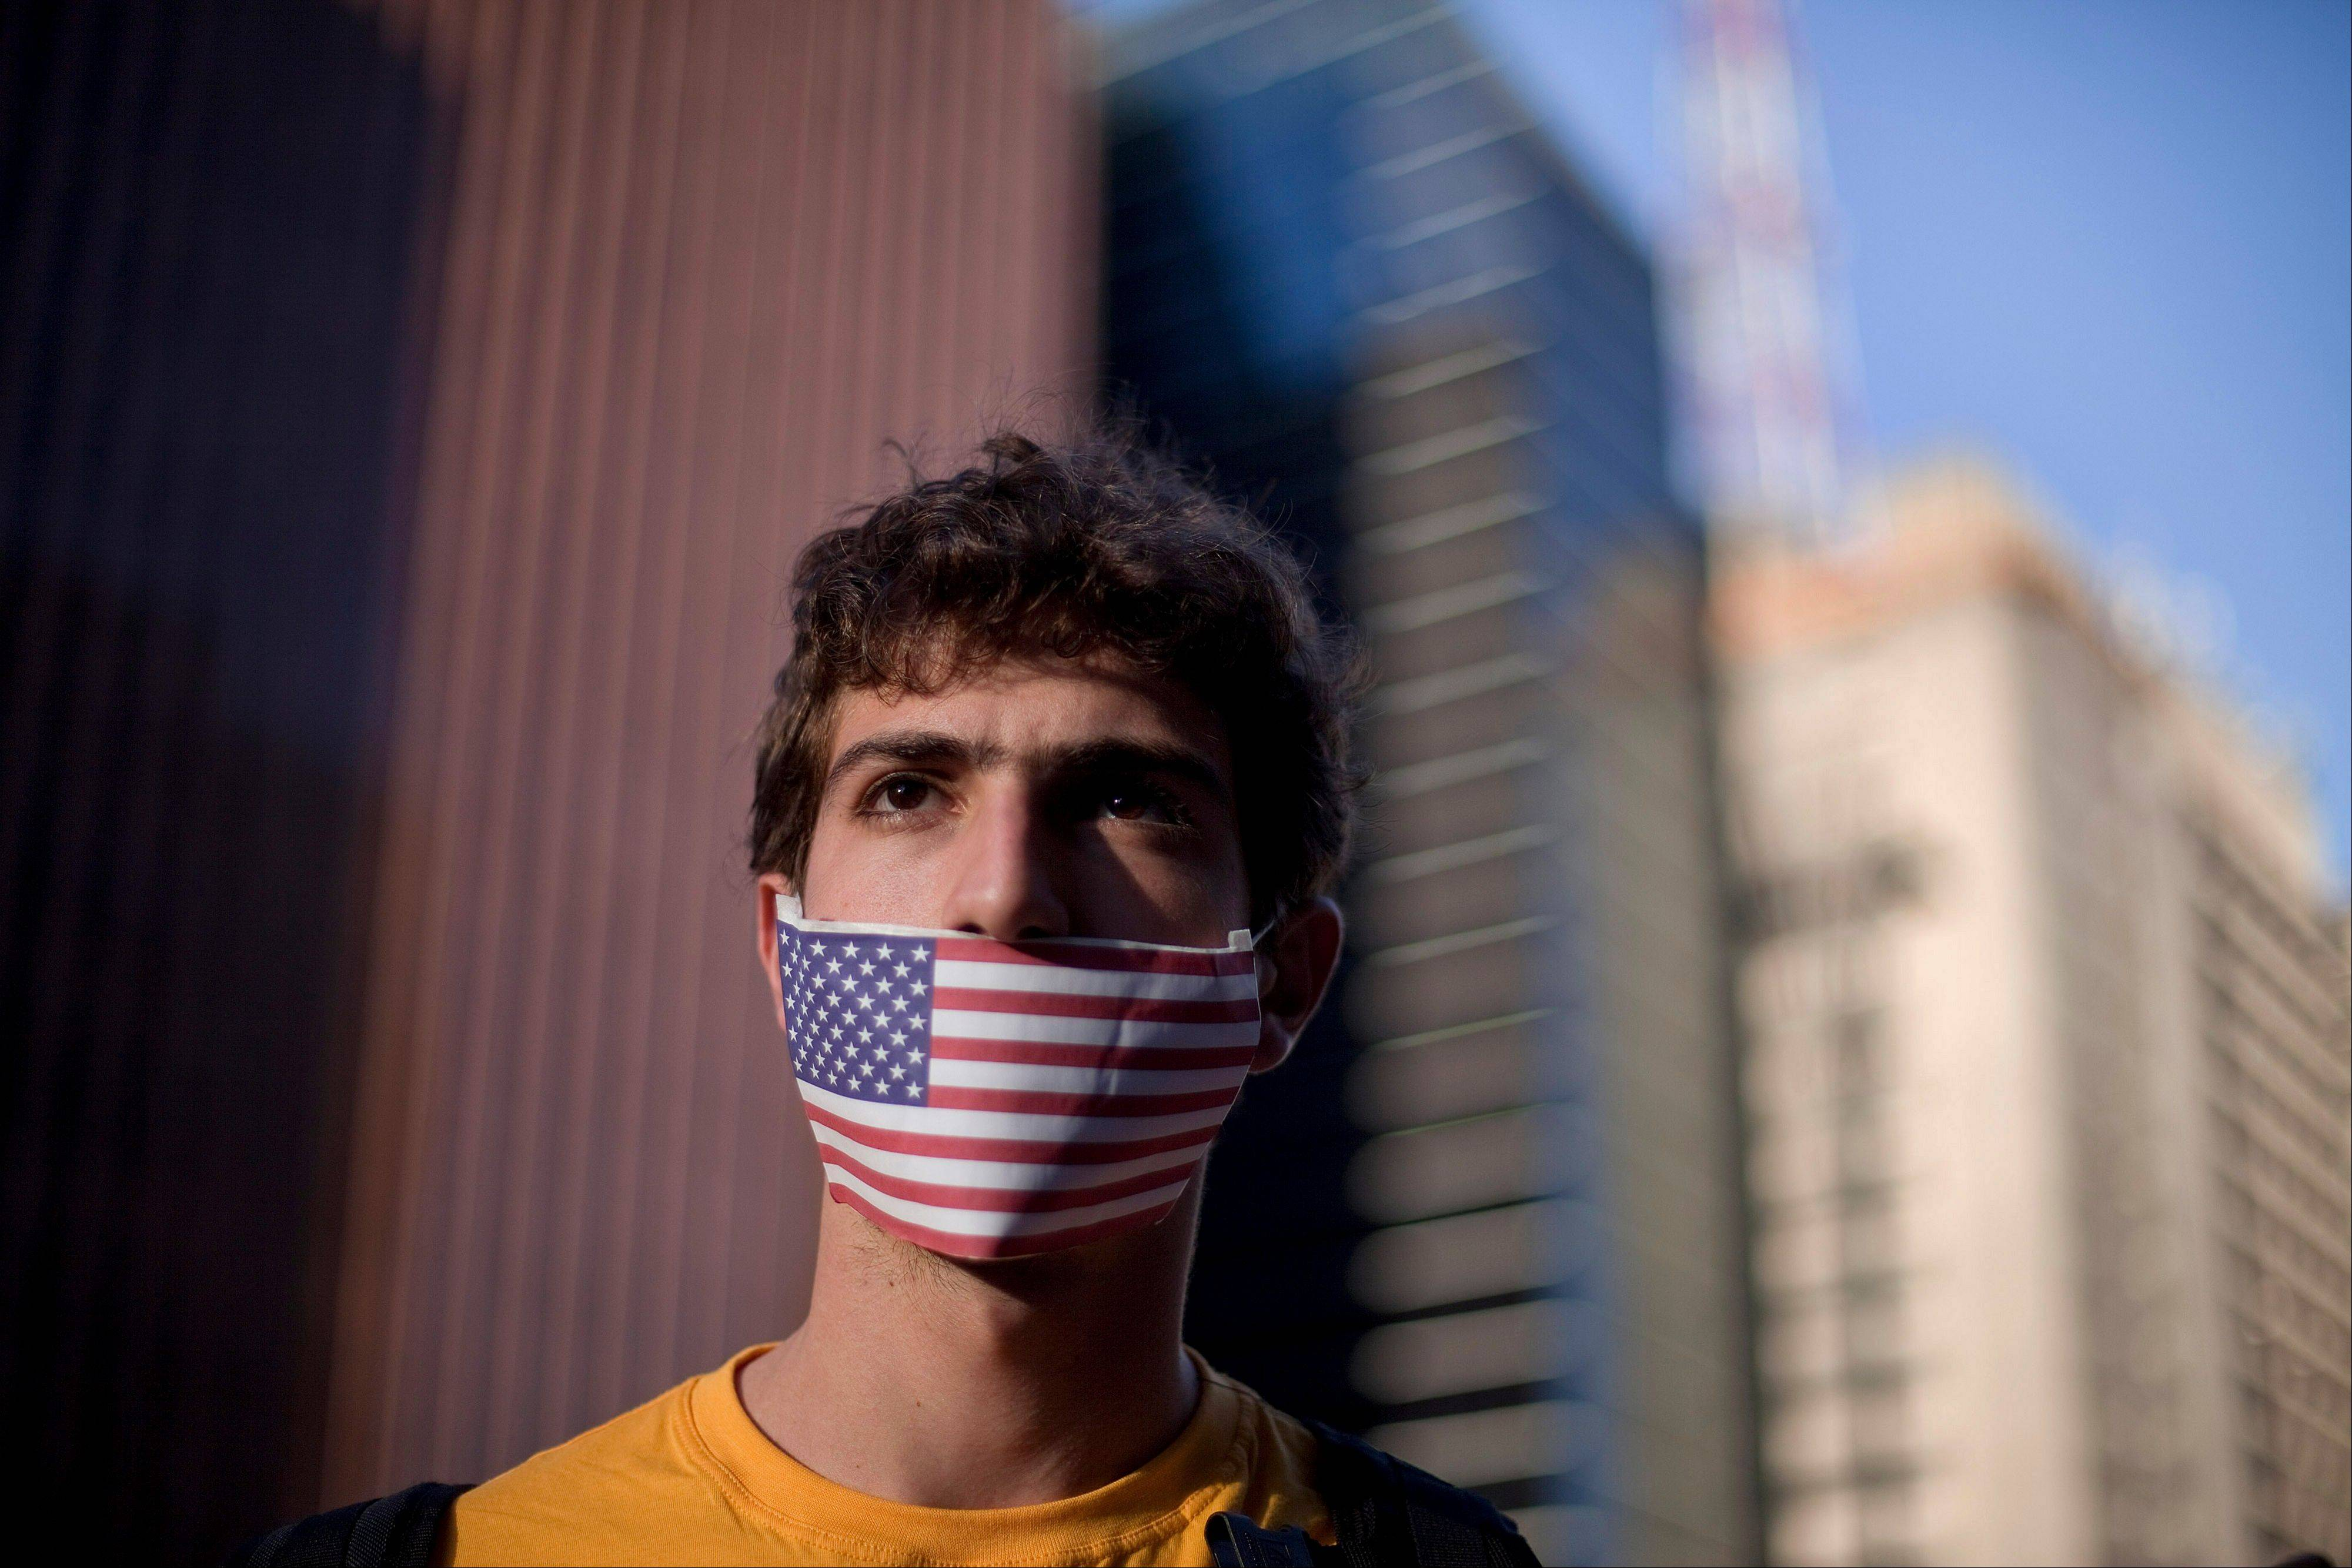 A protester wearing a U.S. flag over his mouth demonstrates with others in Sao Paulo, Brazil on Thursday, July 18, 2013 against their government�s rejection of the asylum application of U.S. citizen Edward Snowden who leaked top-secret documents about sweeping U.S. surveillance programs. Former U.S. secretary of state Madeleine Albright once dubbed the United States �the indispensable nation.� But the world watched America stumble through a string of crises in 2013.